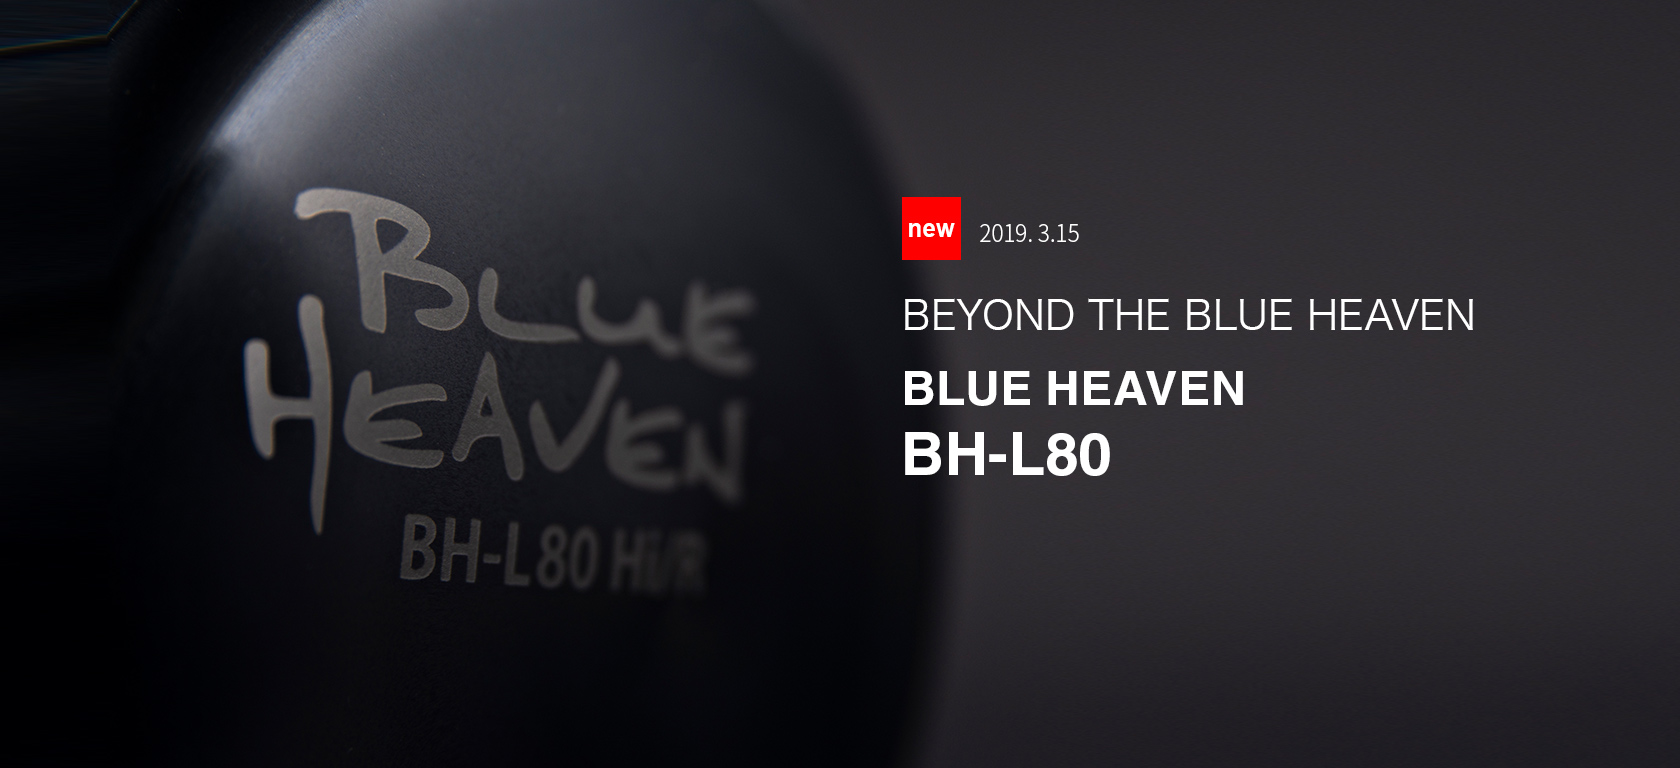 BEYOND THE BLUE HEAVEN BH-L80